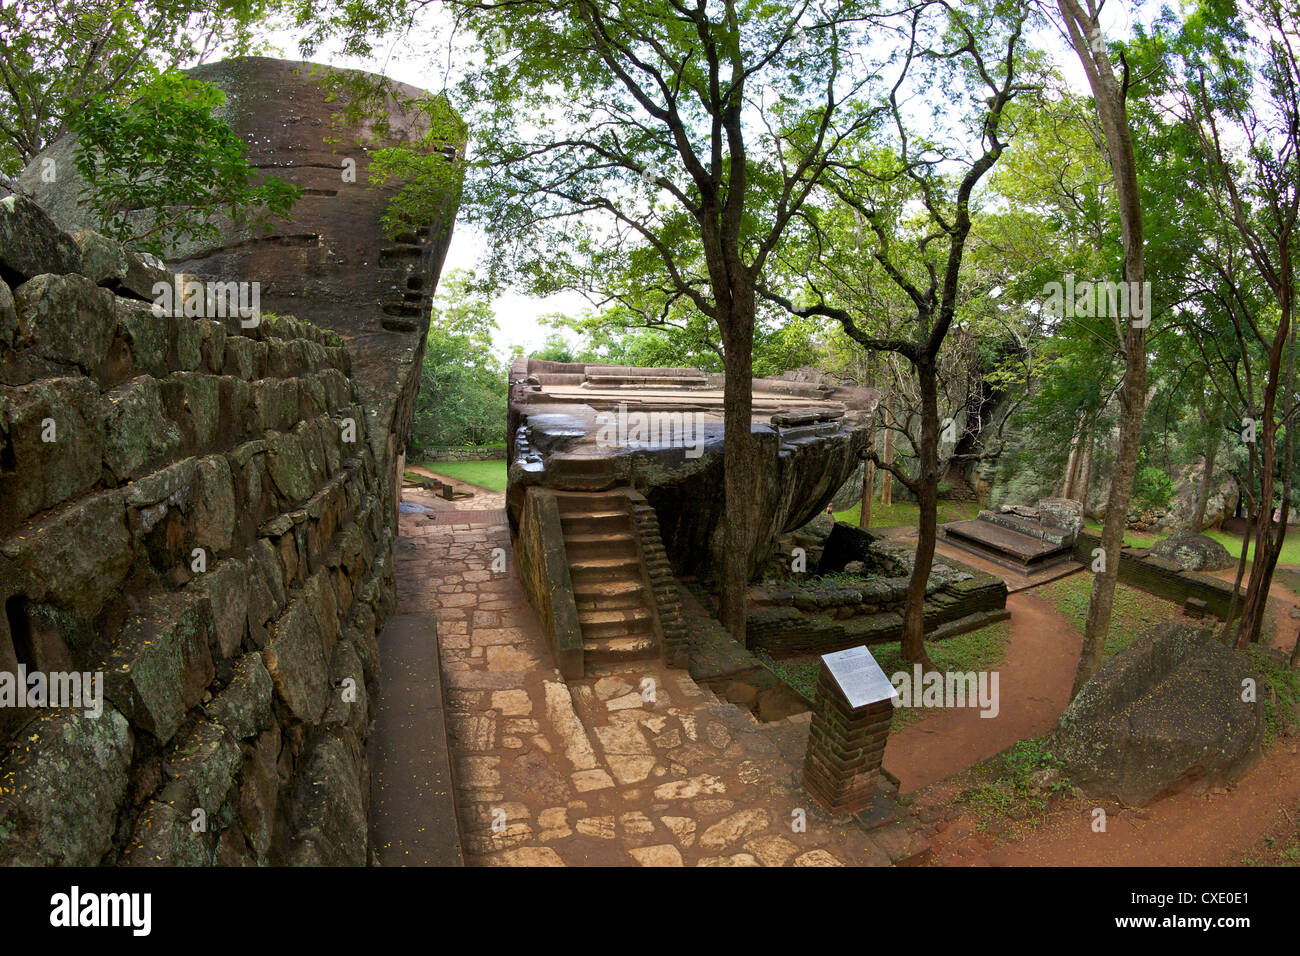 Audience Hall, Sigiriya Lion Rock Fortress, 5th century AD, UNESCO World Heritage Site, Sigiriya, Sri Lanka, Asia - Stock Image